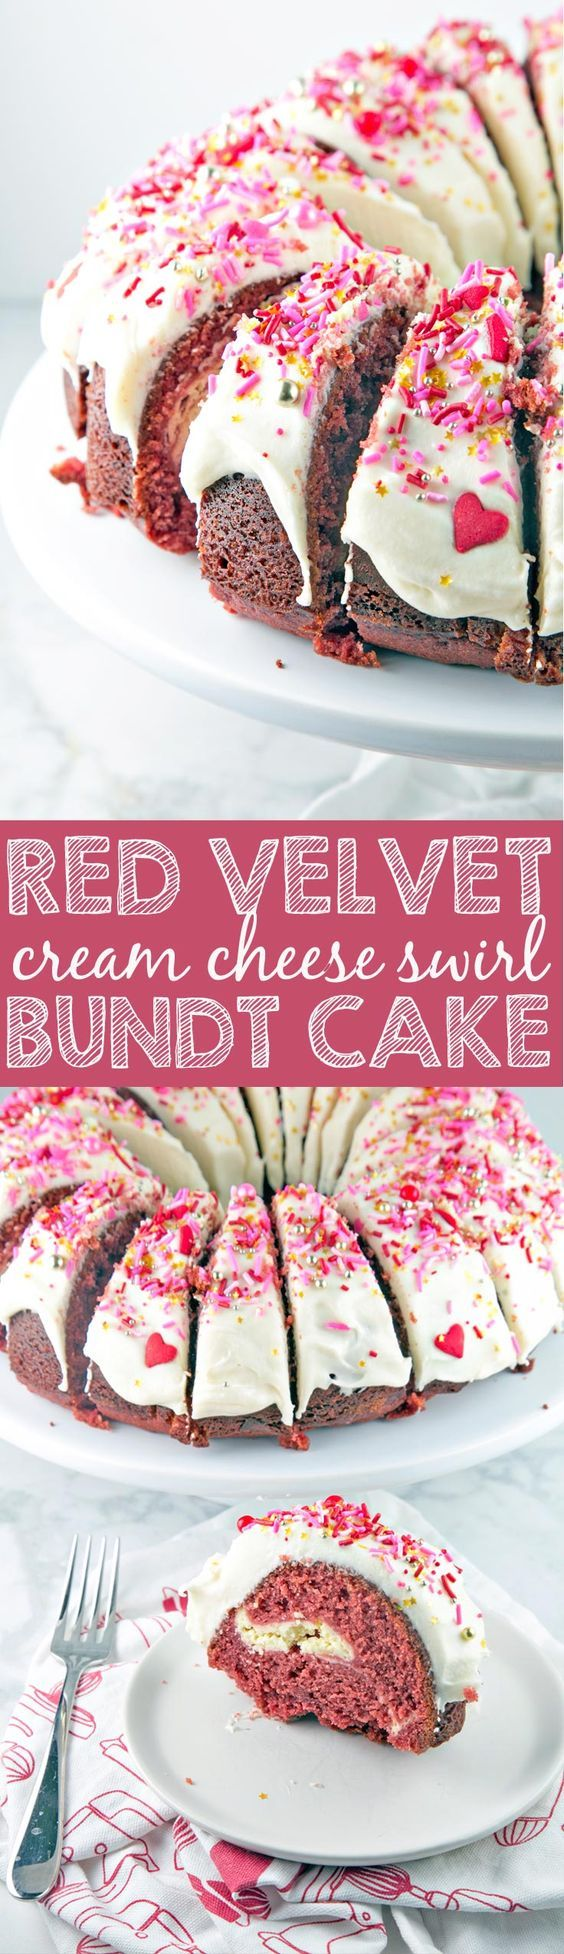 Red Velvet Bundt Cake: a traditional red velvet cake with a cream cheese swirl, mixed in one bowl. Perfect for Valentine's Day - or any day! via @bnsnbrnrbakery